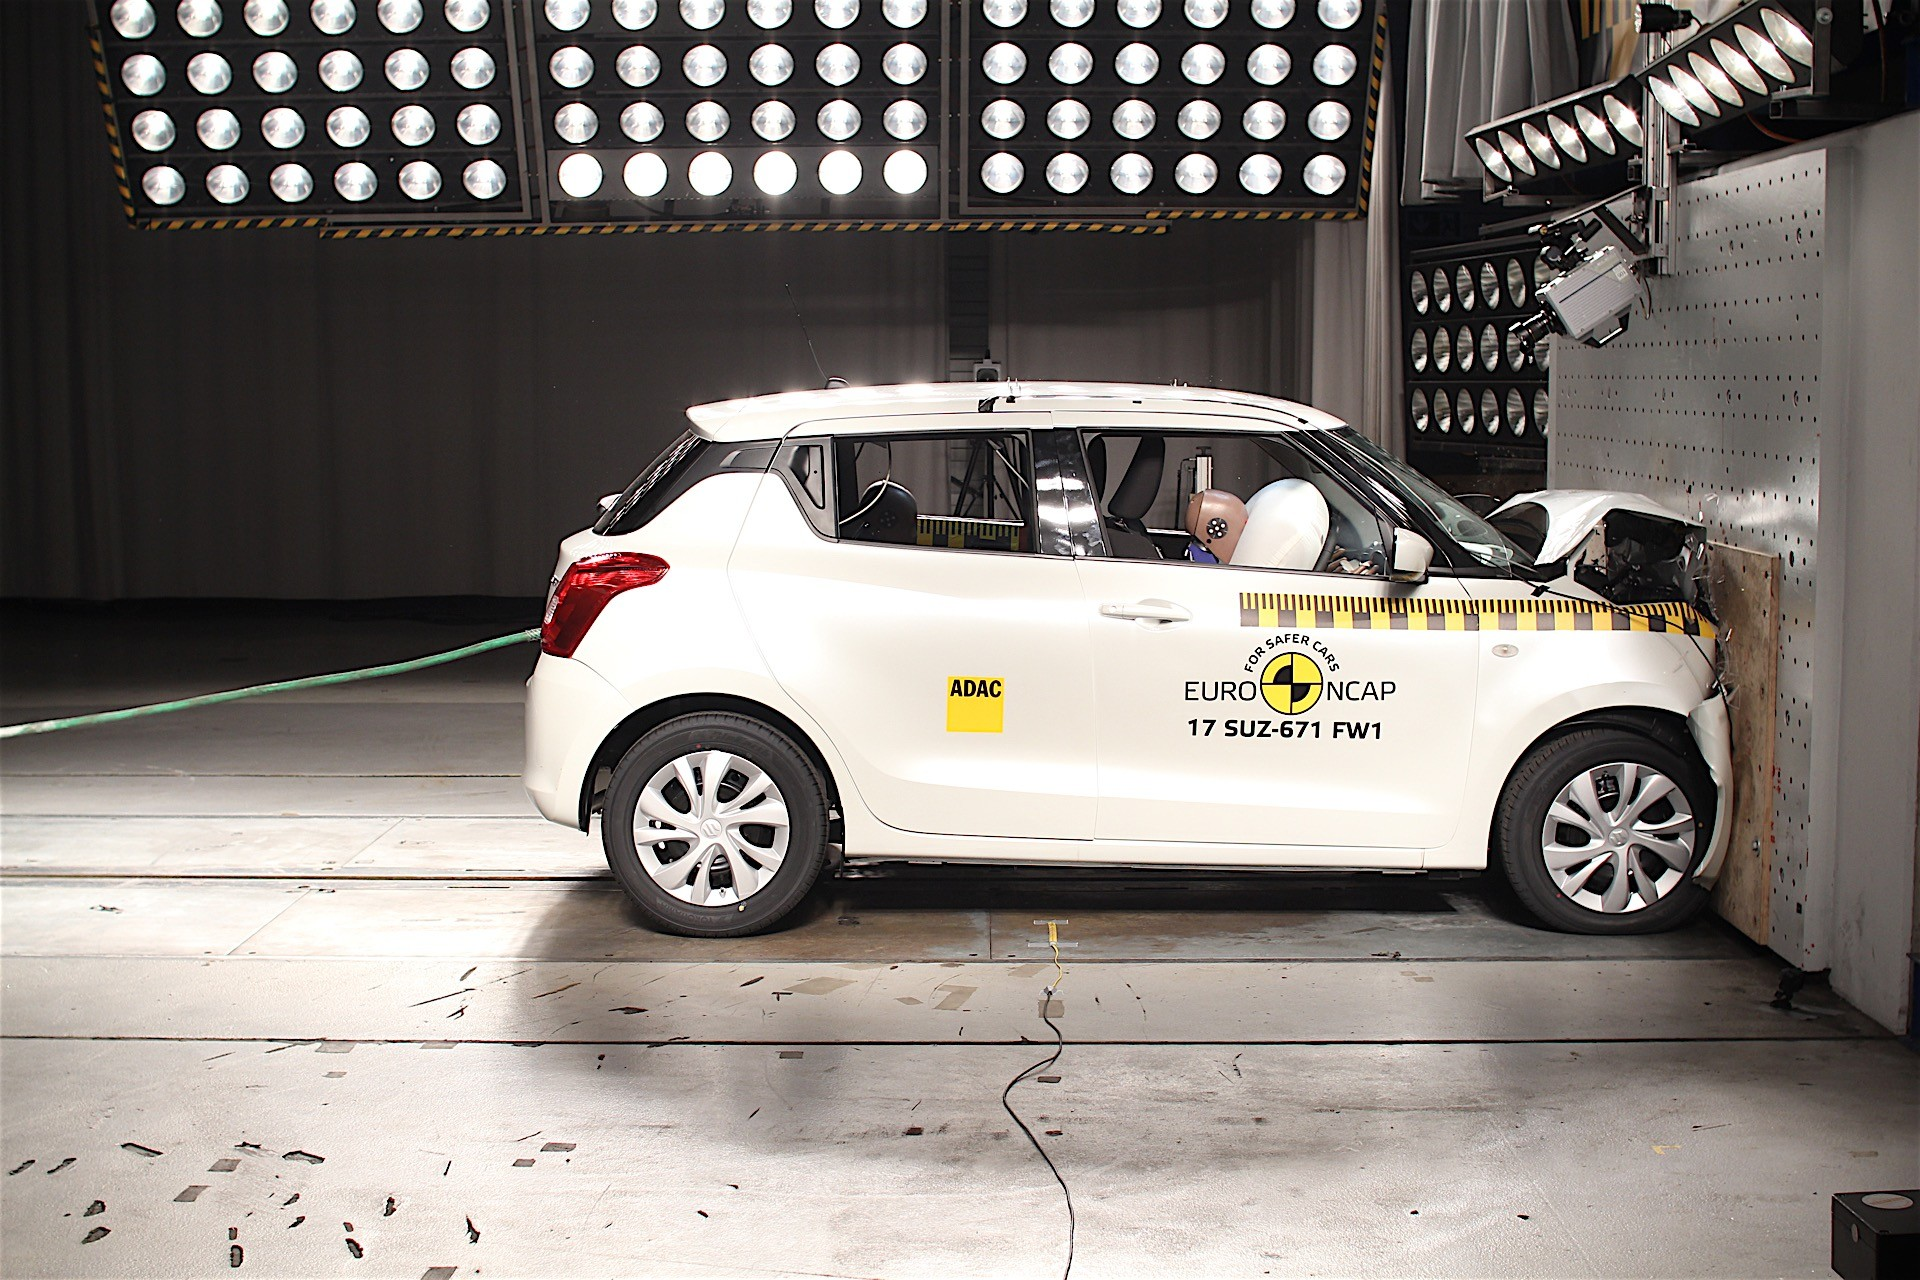 Euro NCAP crash tests may 2017 (16)